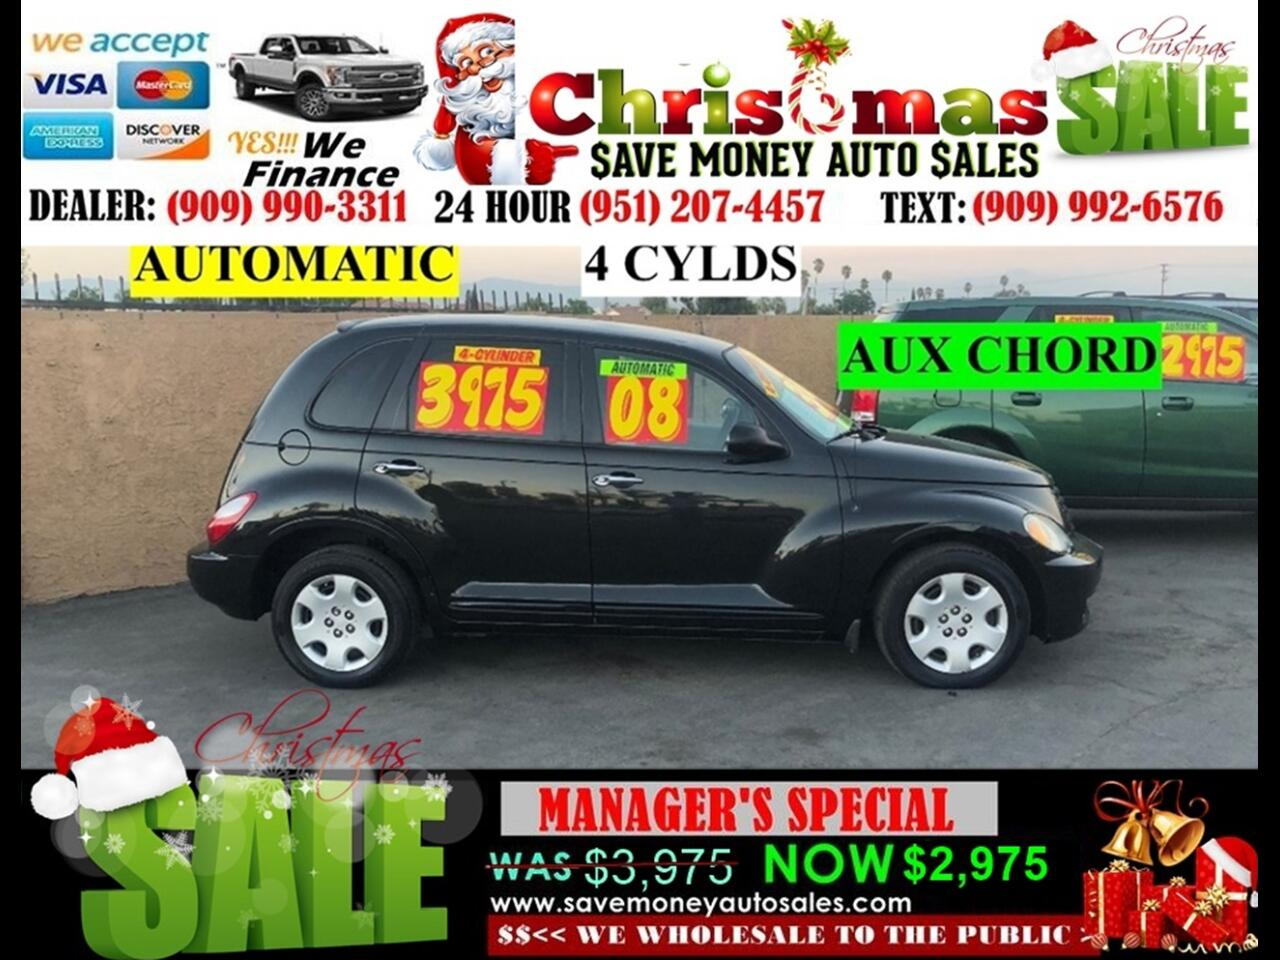 2008 Chrysler PT Cruiser 4 CYLDS,AUTO,AC AND PRIVACY GLASS>>GREAT BUY